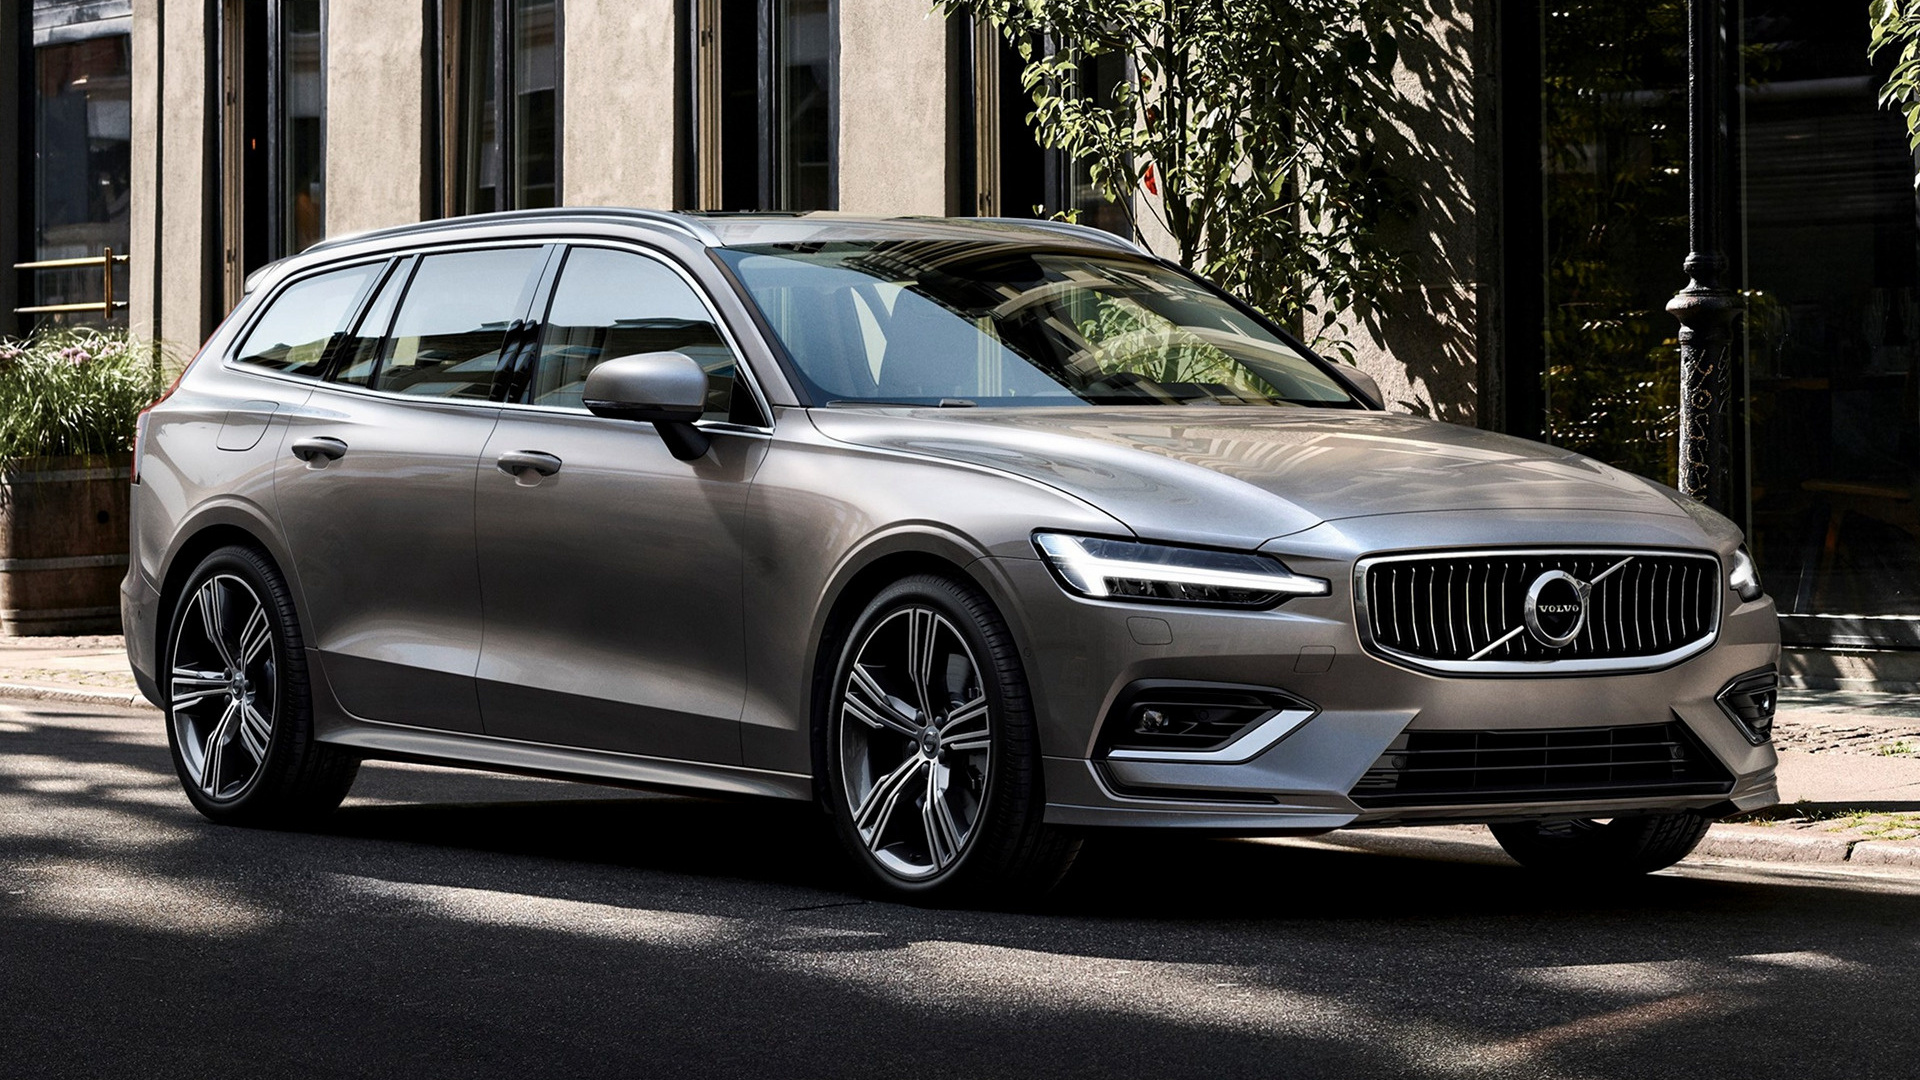 2018 Volvo V60 Inscription Wallpapers And Hd Images Car Pixel